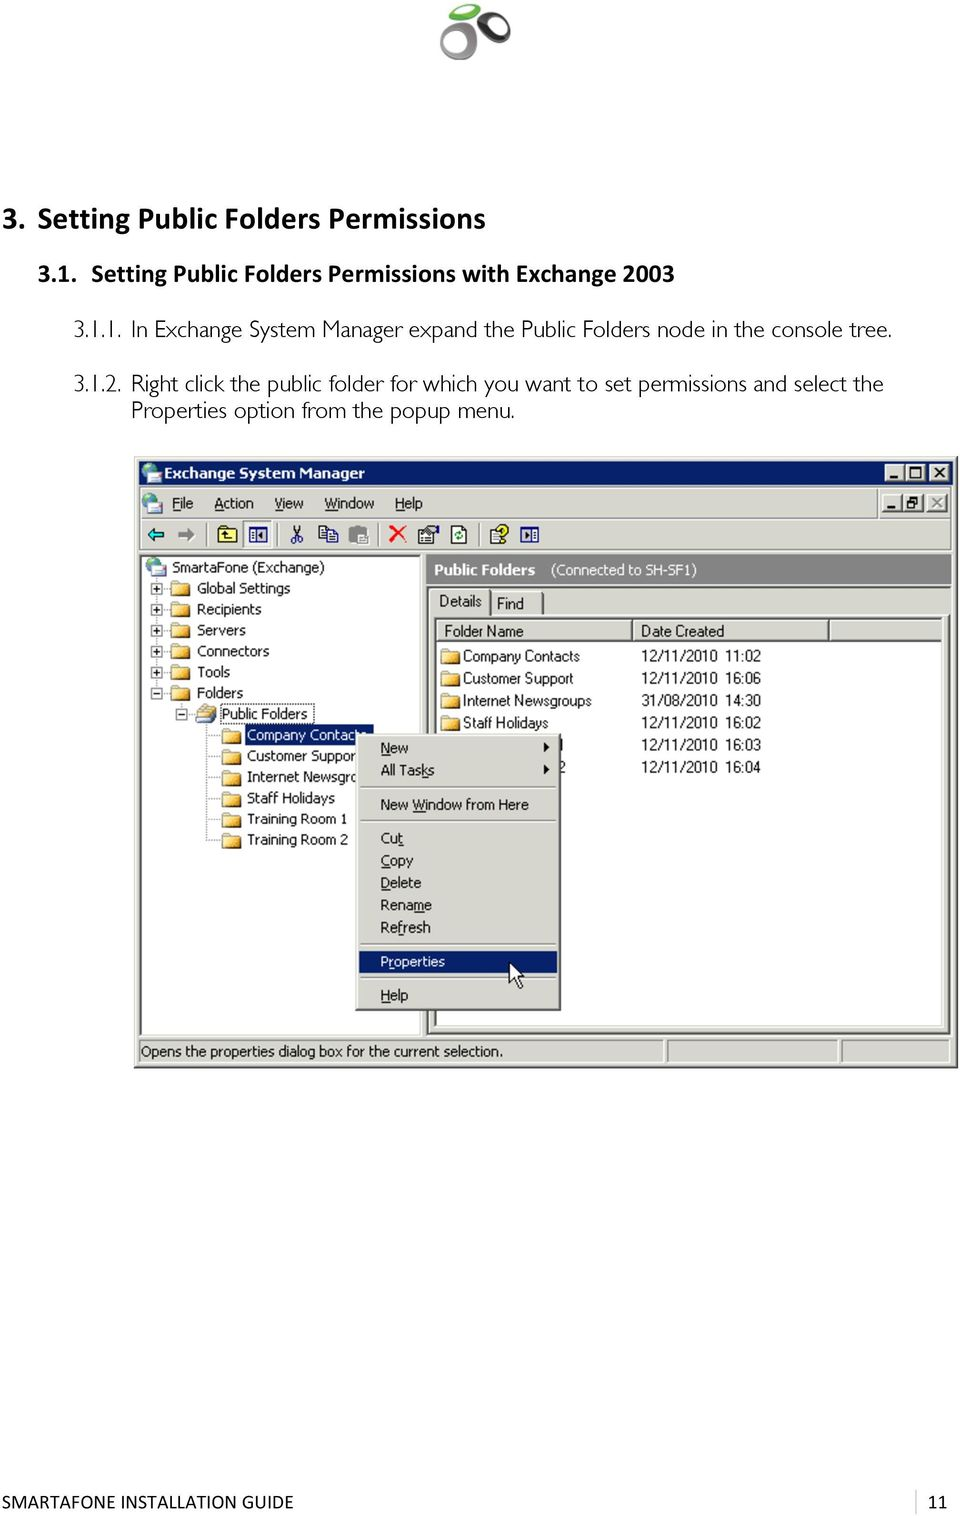 1. In Exchange System Manager expand the Public Folders node in the console